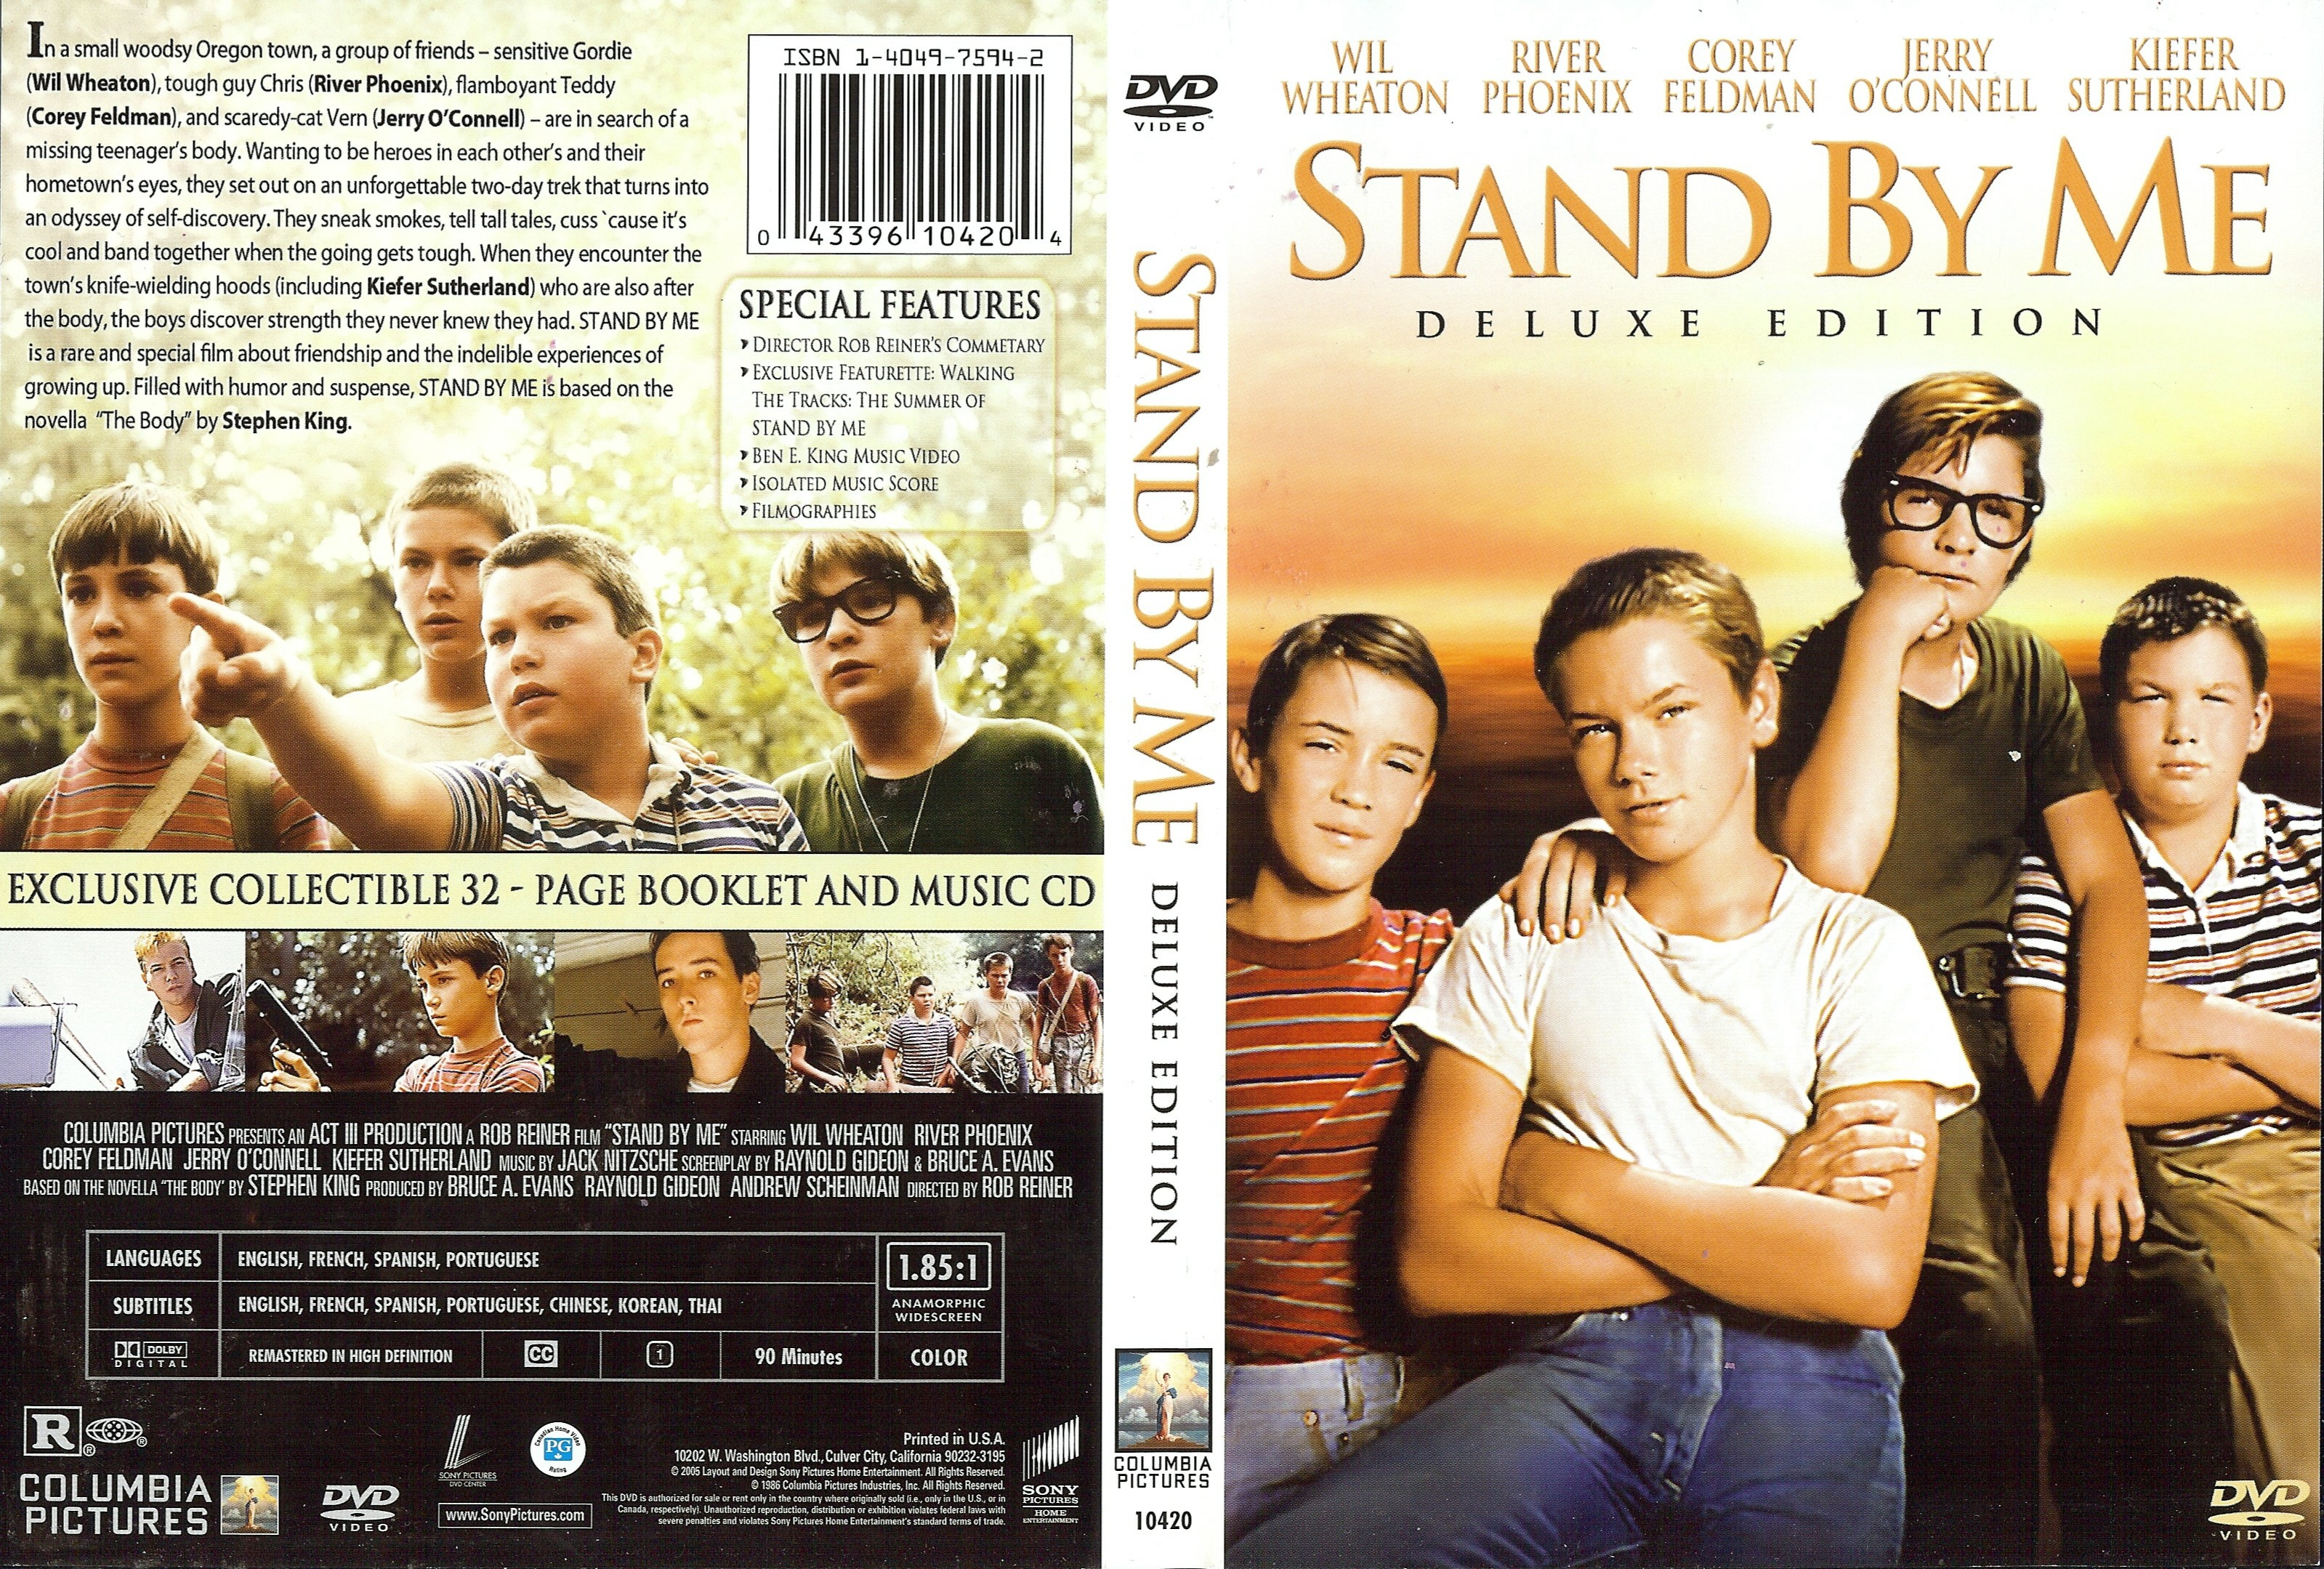 Gordie And Chris Stand By Me Deluxe Edition R Cdcovers Cc